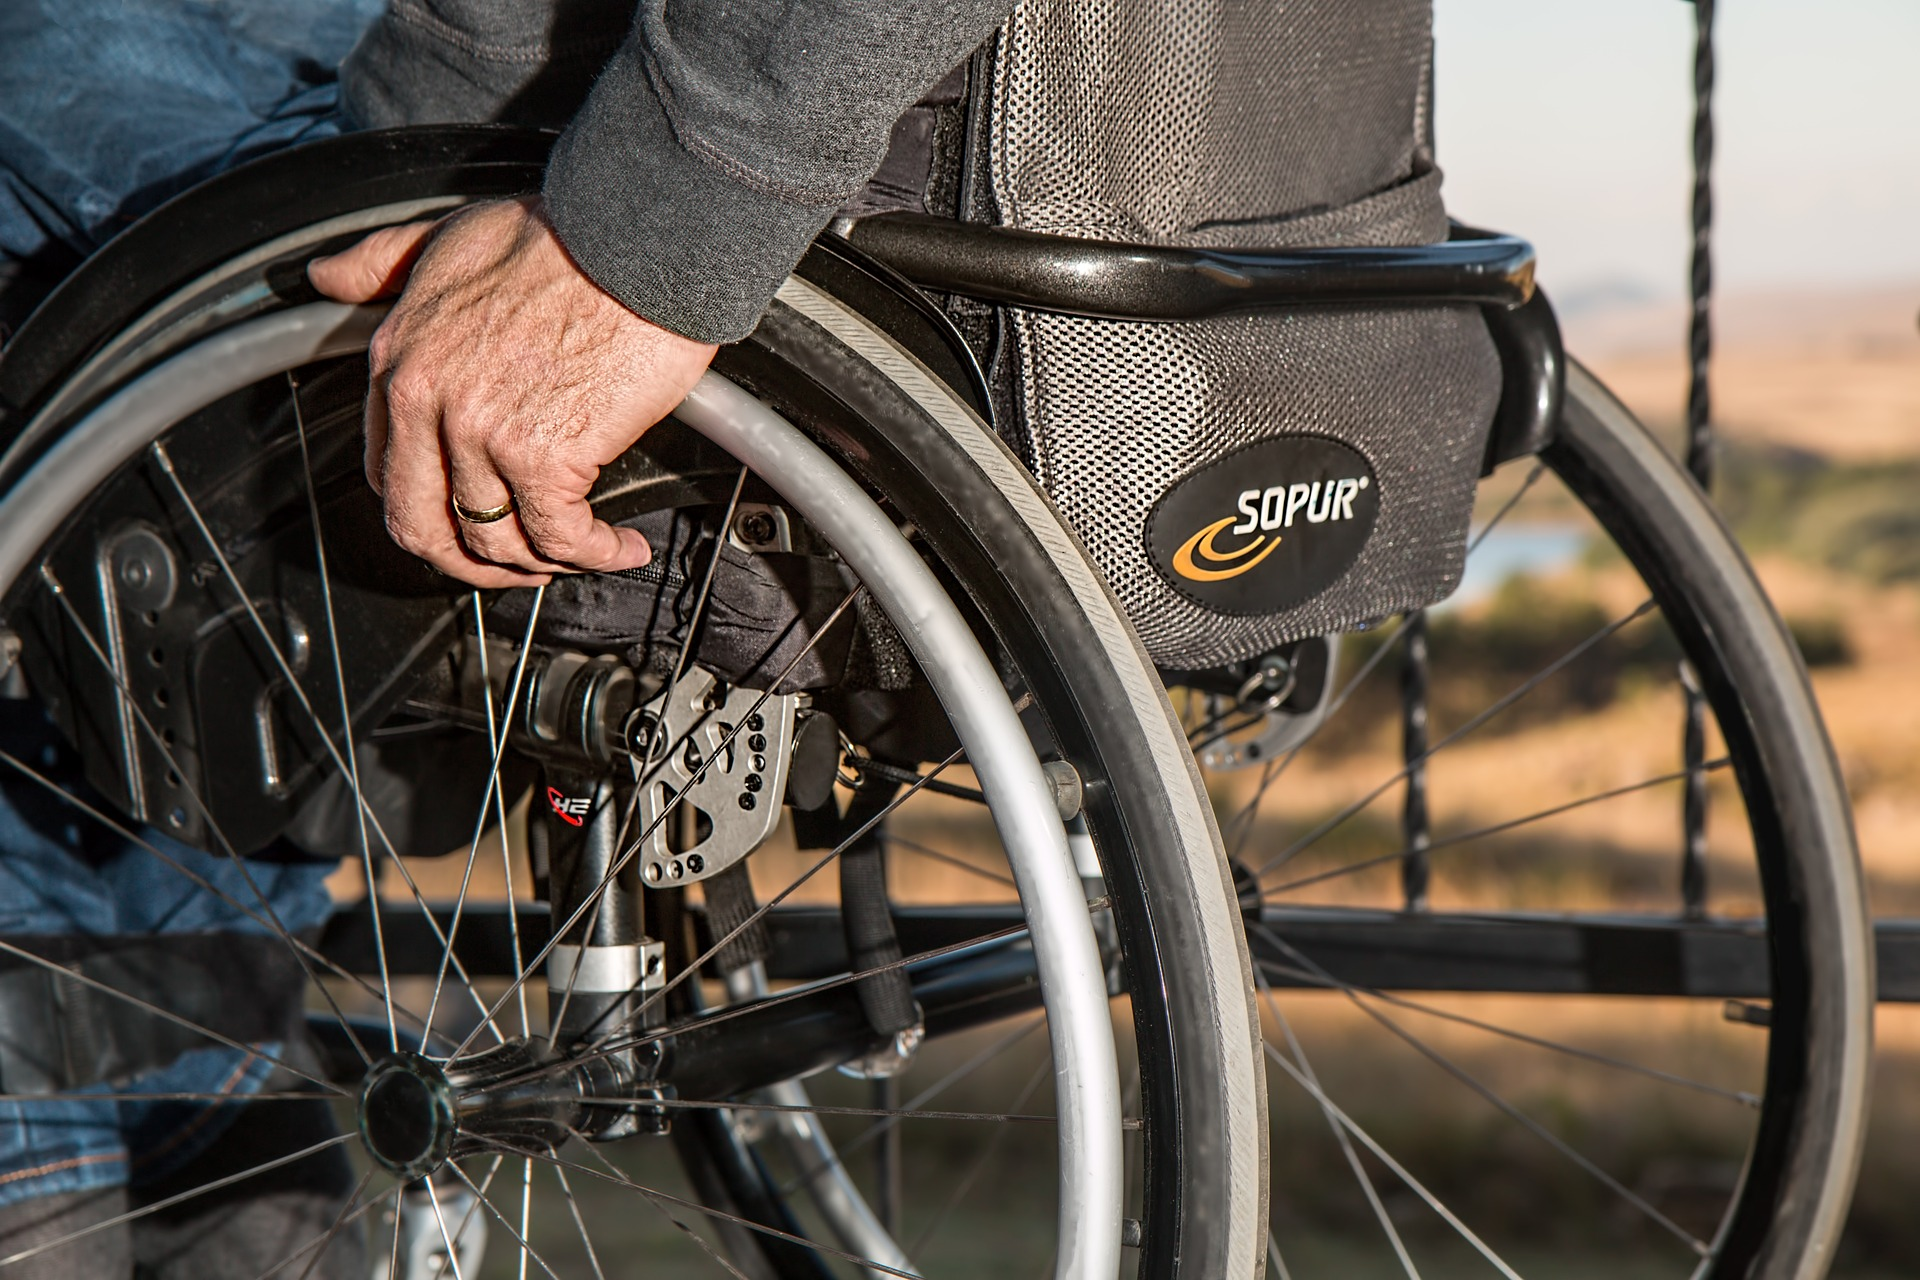 Travelling to Spain with a disability or reduced mobility